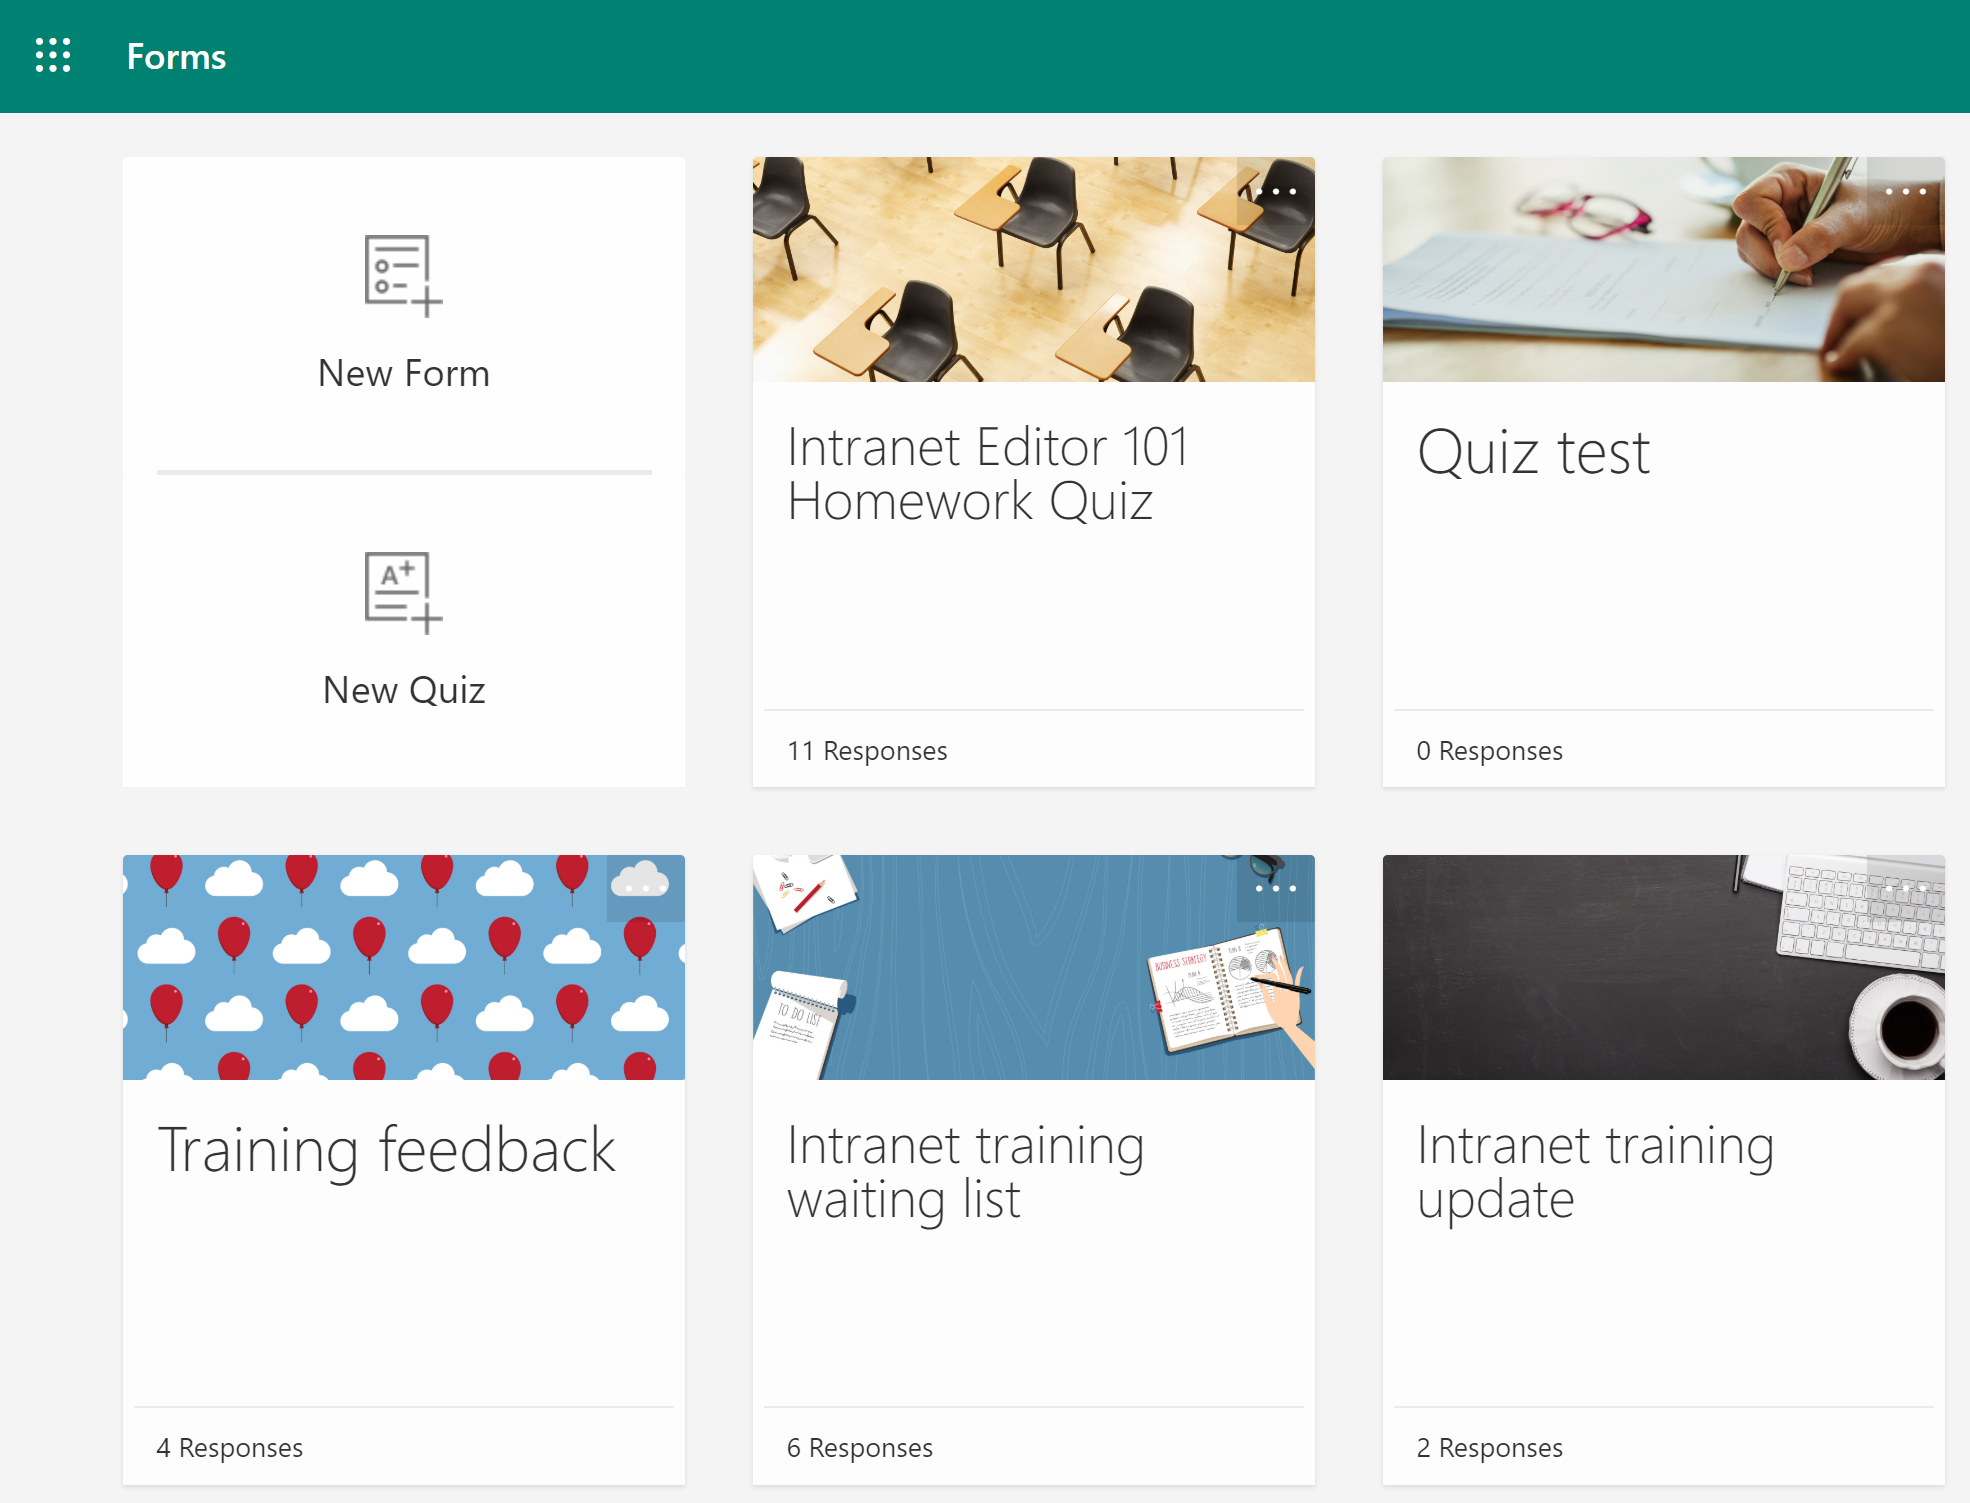 Microsoft Forms helps you create surveys, generate quizzes, conduct polls and capture data.